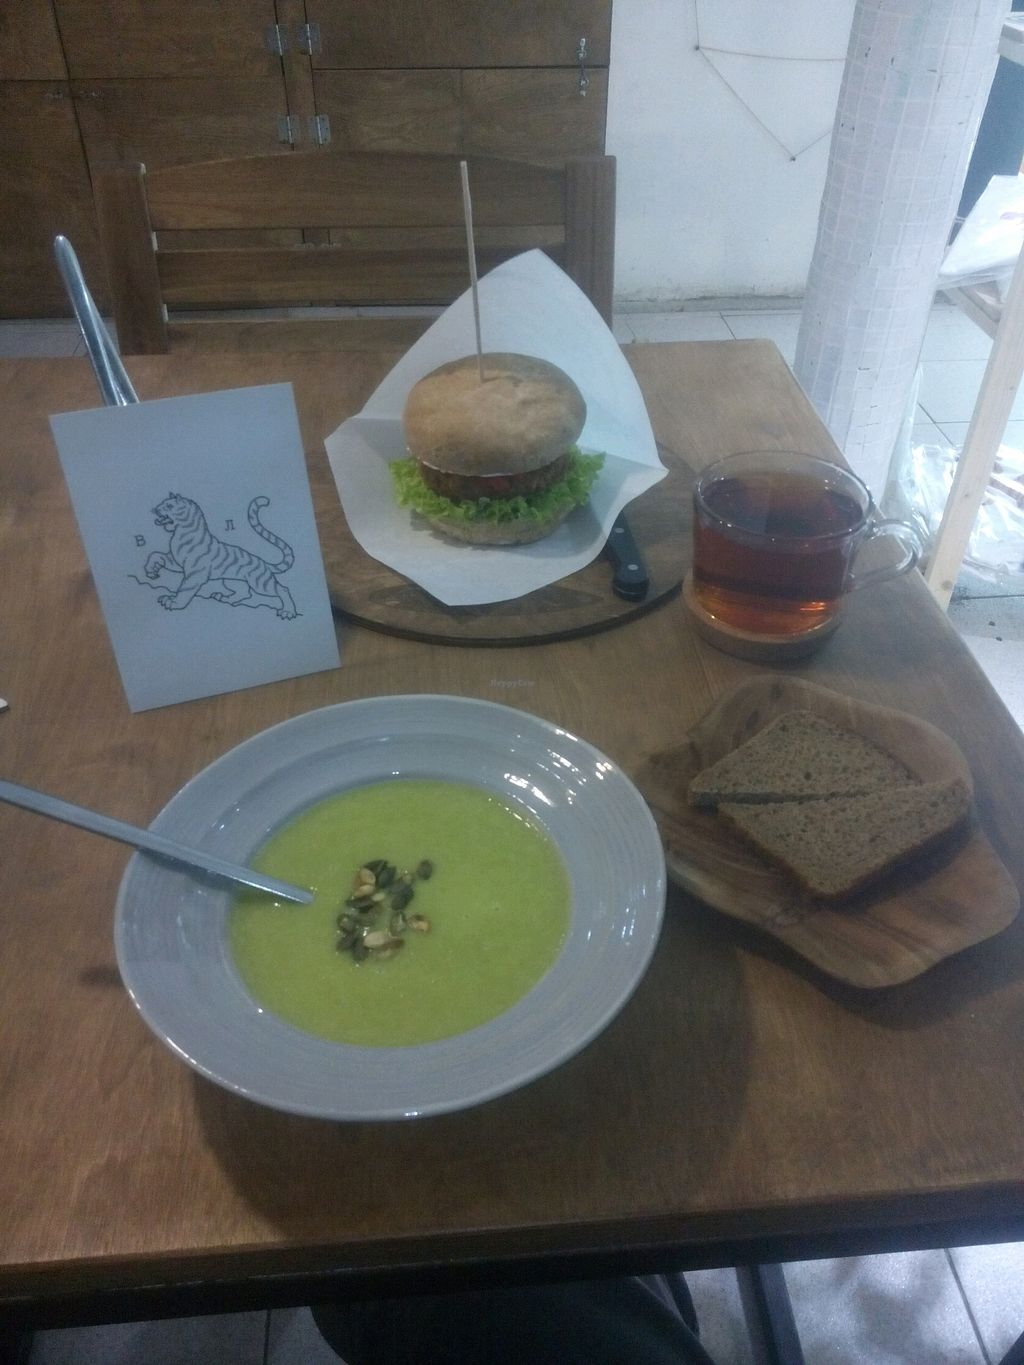 """Photo of Secret Spot Cafe  by <a href=""""/members/profile/LoisWeb"""">LoisWeb</a> <br/>Tuesday business lunch :) <br/> October 24, 2017  - <a href='/contact/abuse/image/103149/318227'>Report</a>"""